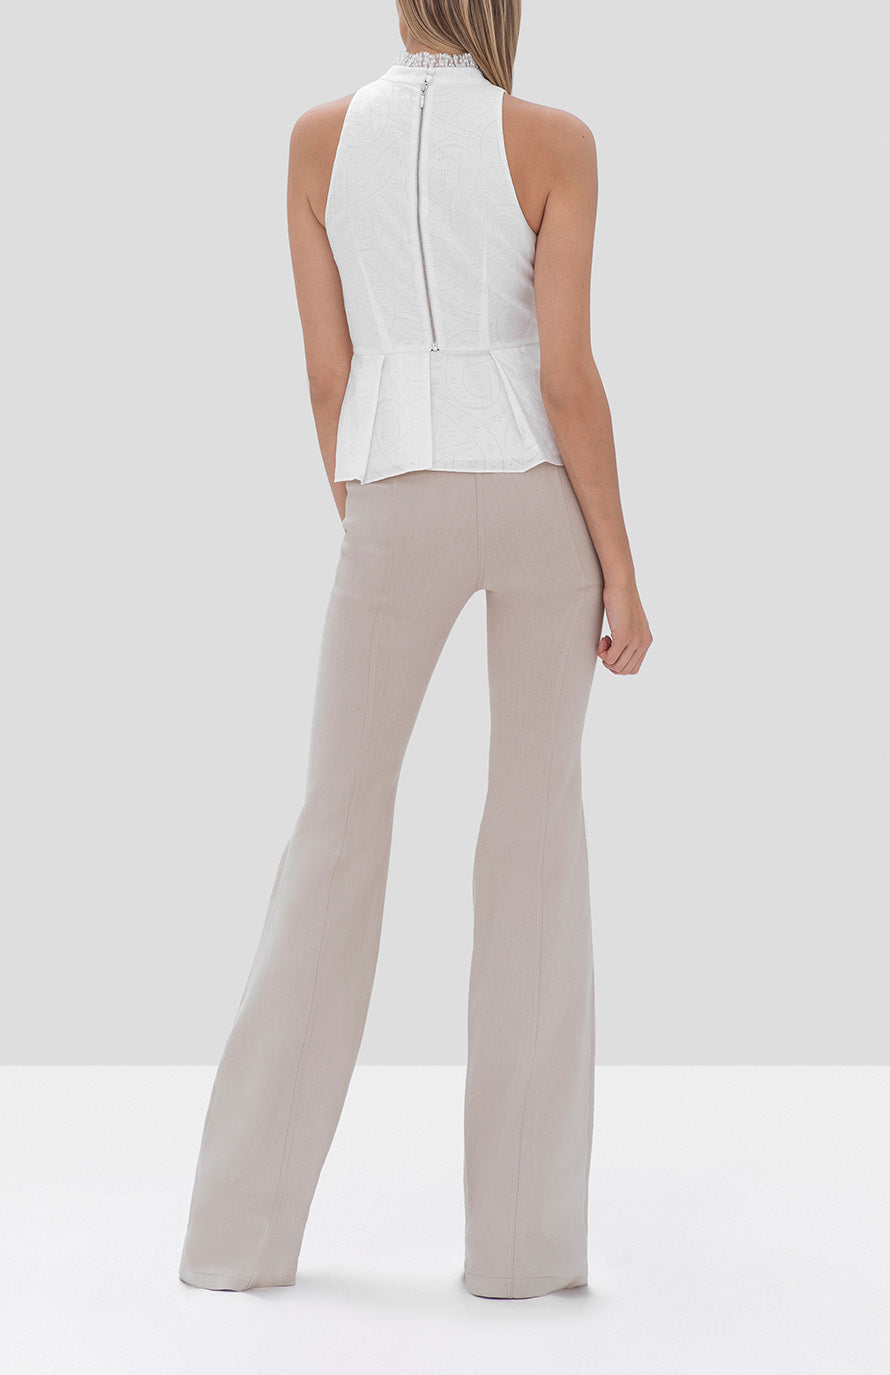 Alexis Helene Pant in Oyster Denim and Leta Top in White - Rear View